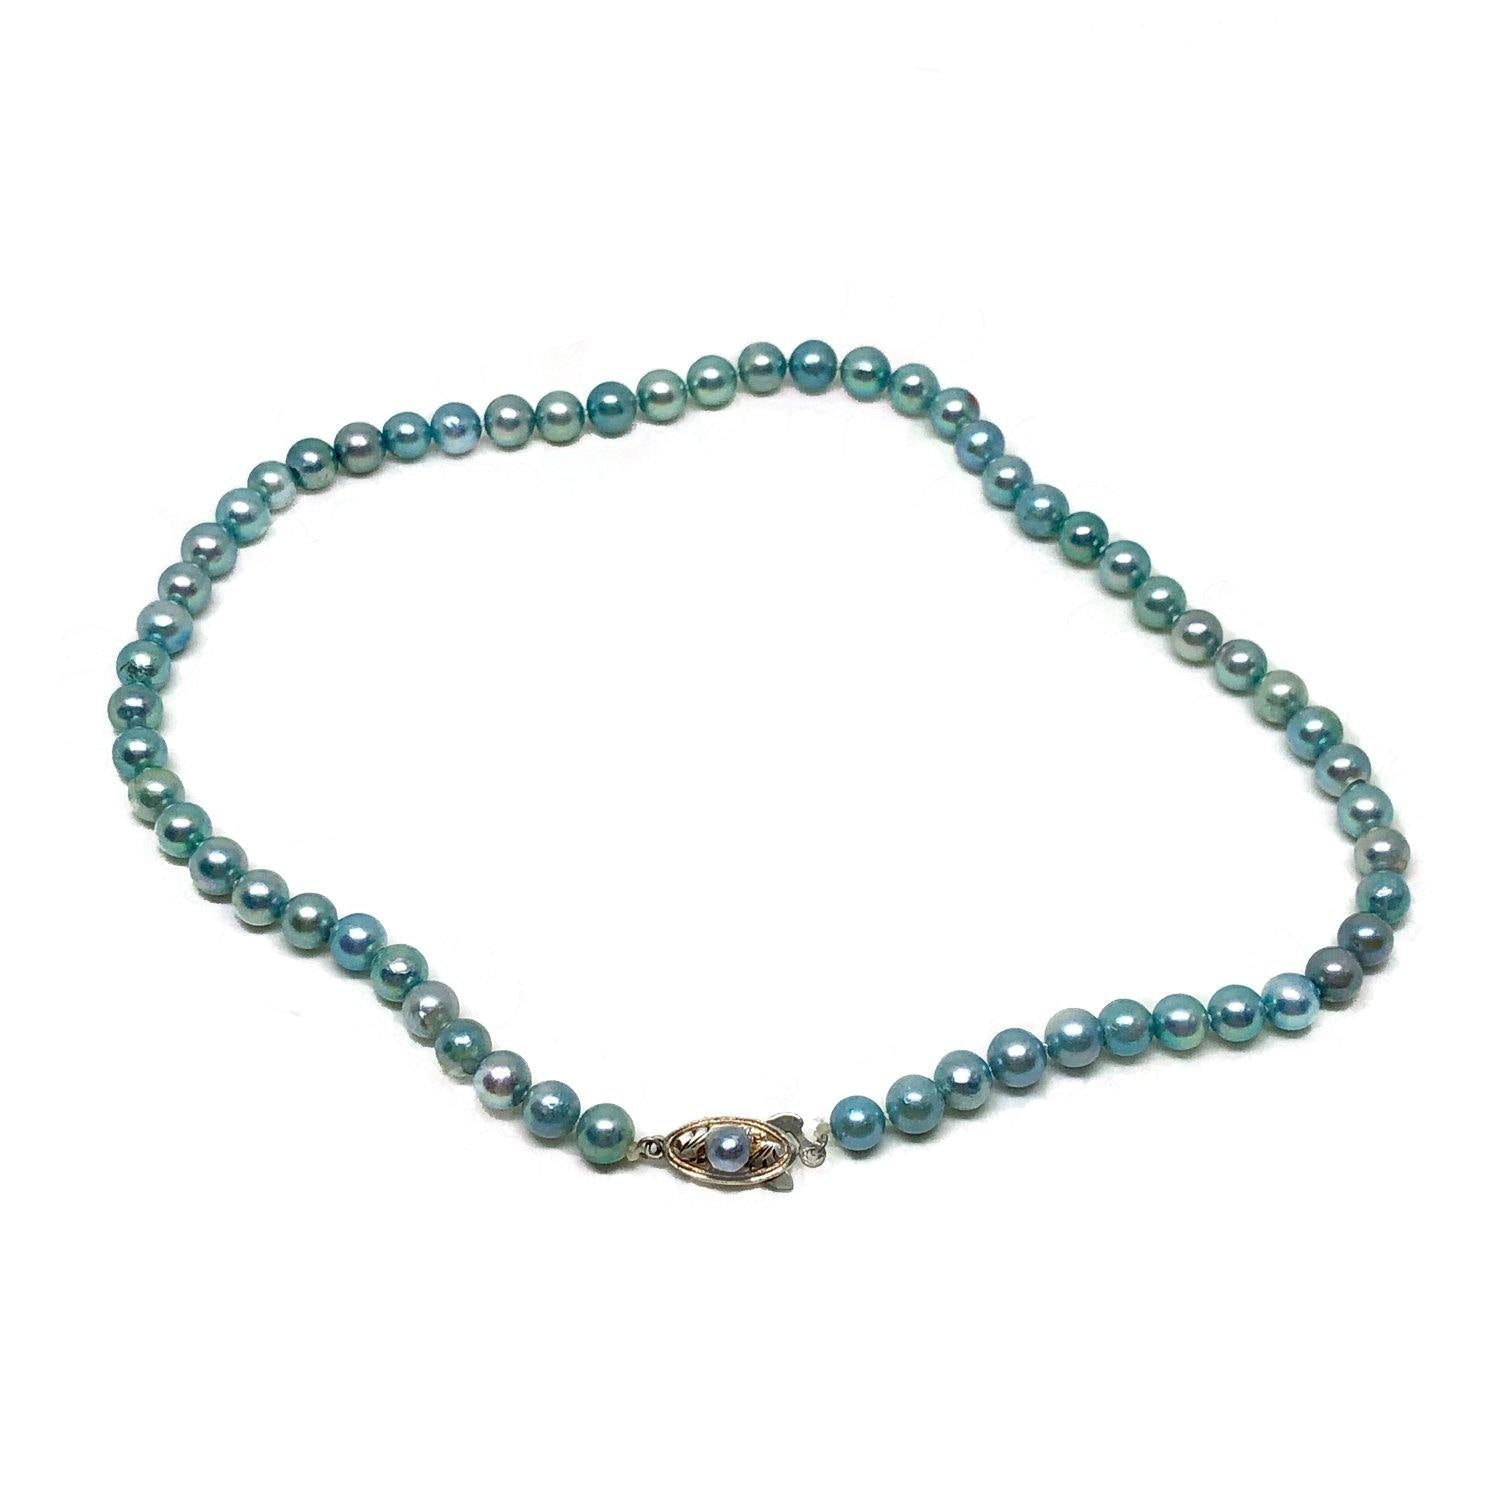 Blue Japanese Saltwater Cultured Akoya Pearl Necklace - Sterling Silver